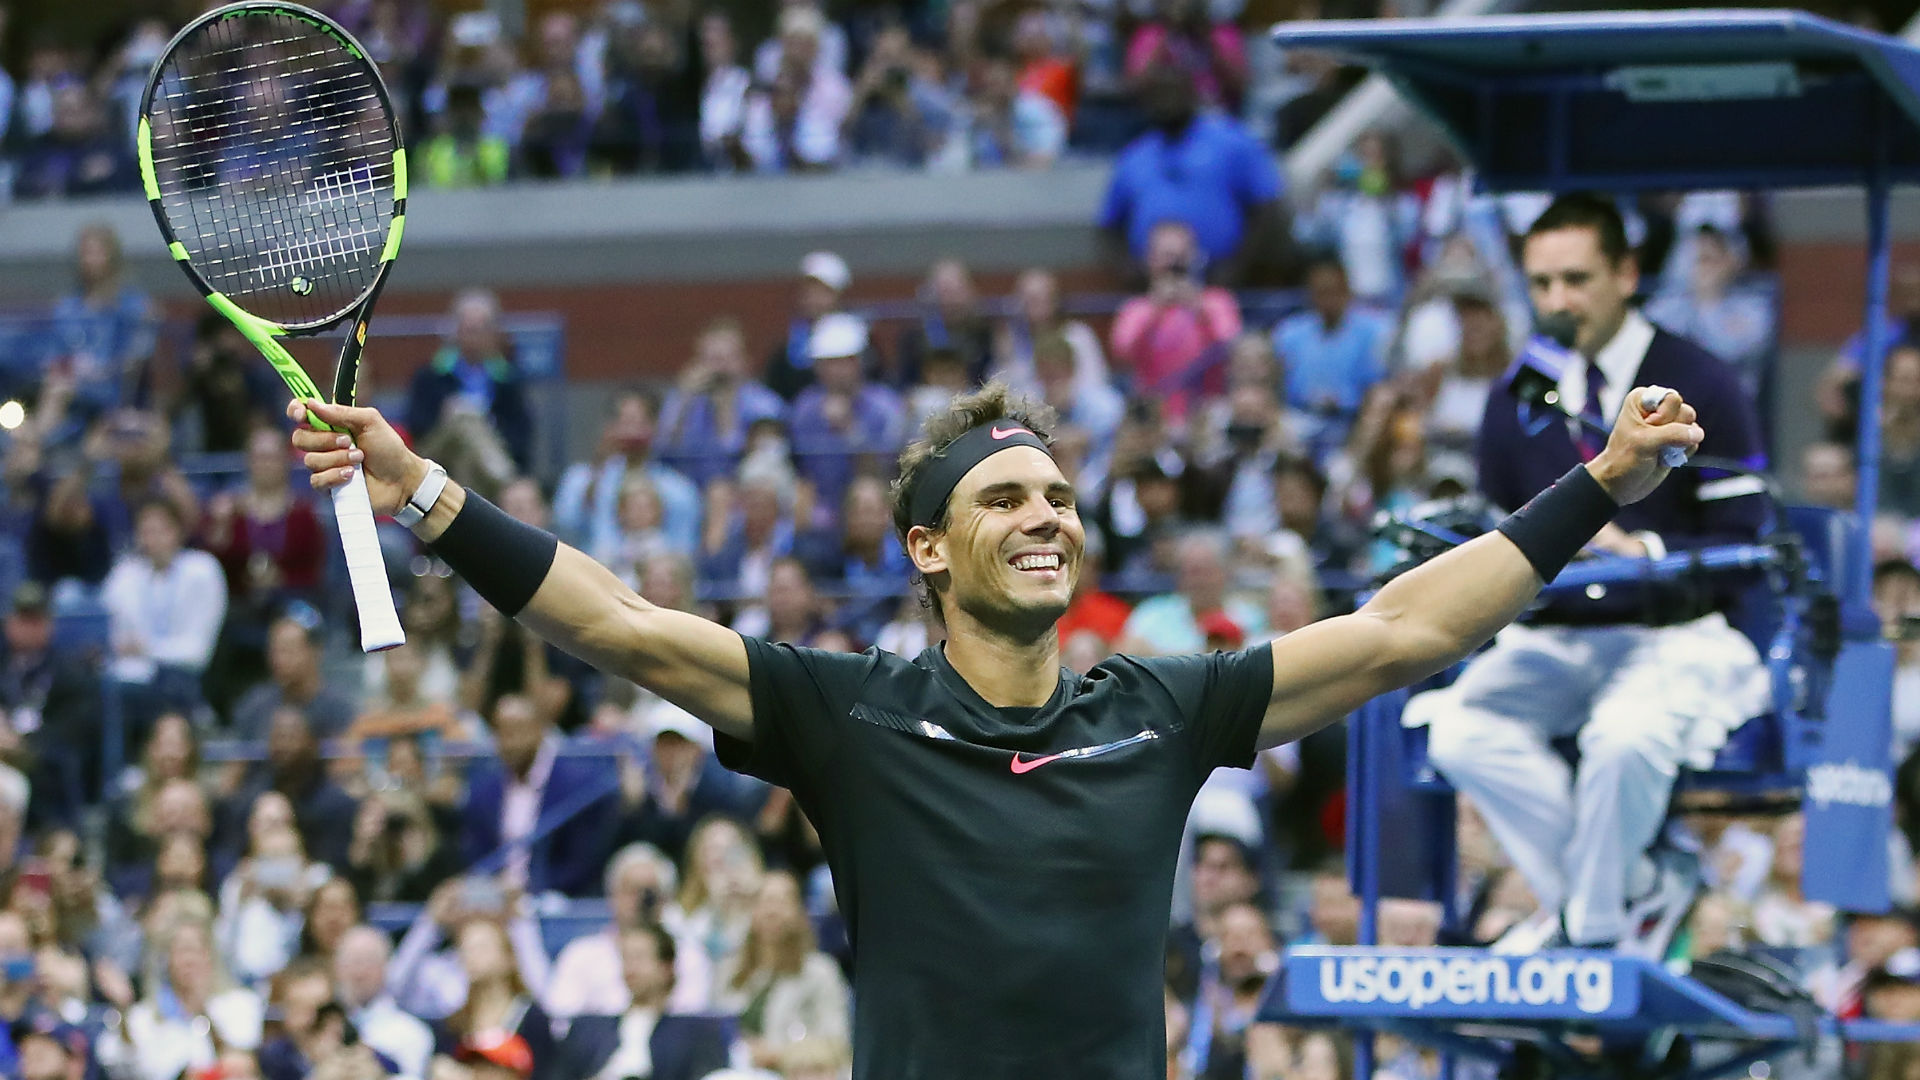 U.S. Open tennis 2017: Rafael Nadal beats Kevin Anderson in straight sets for third U.S. Open title